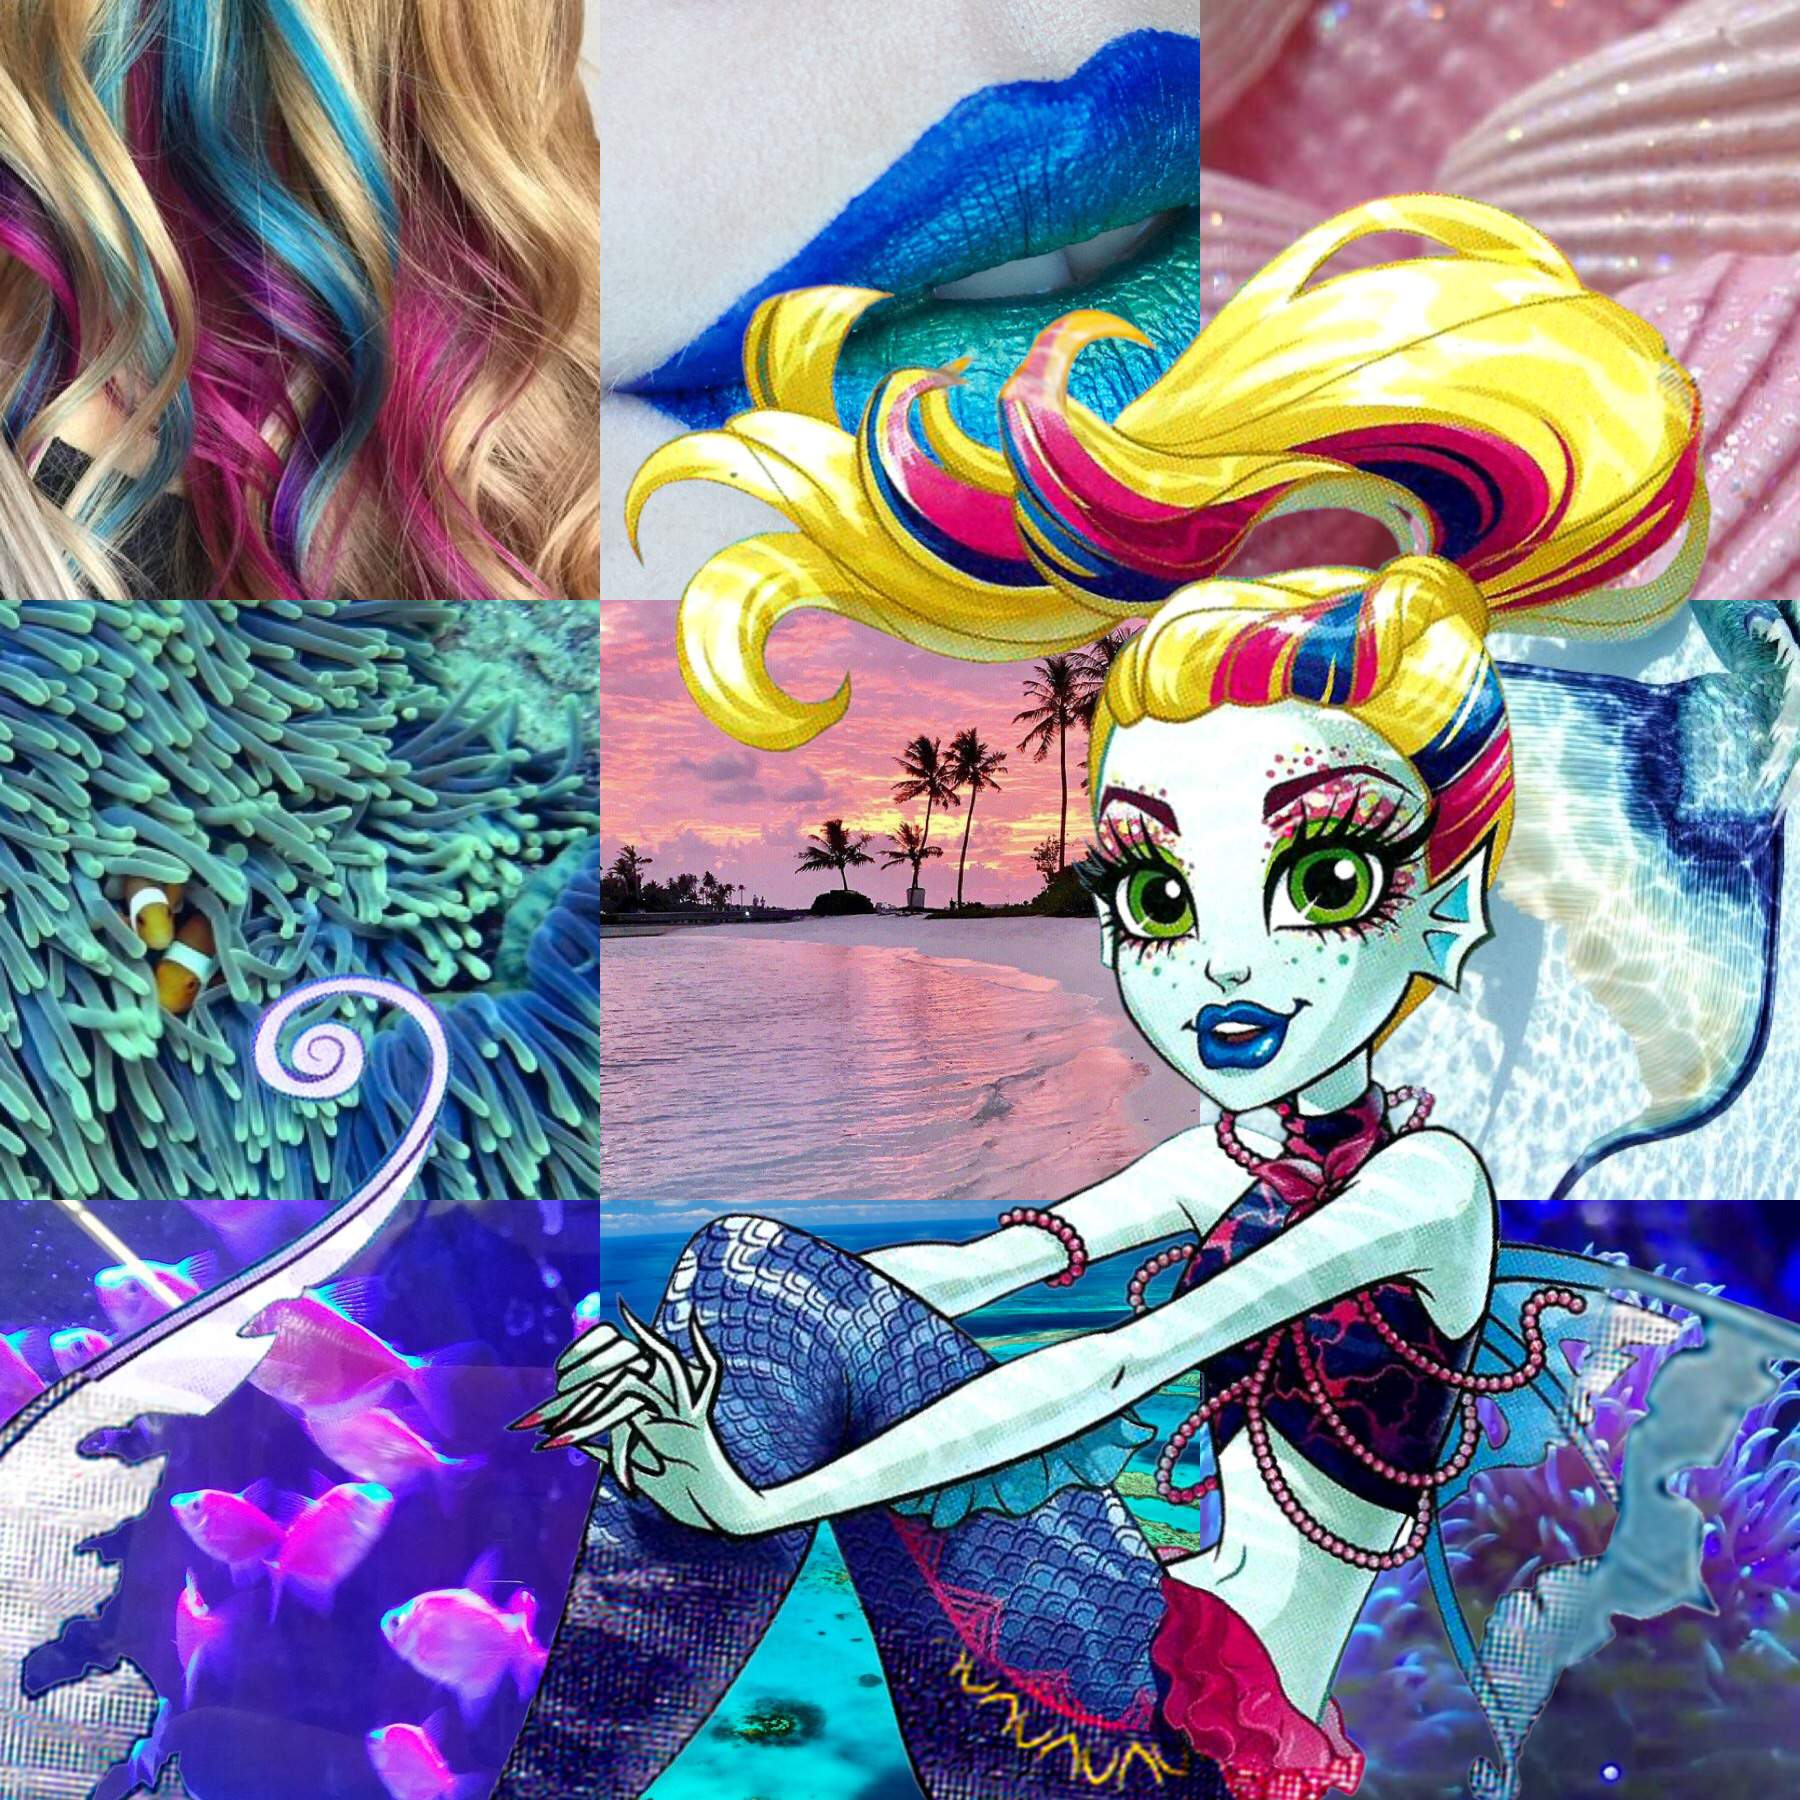 Monster High Mermaid Coloring Pages | Mermaid coloring pages ... | 1800x1800